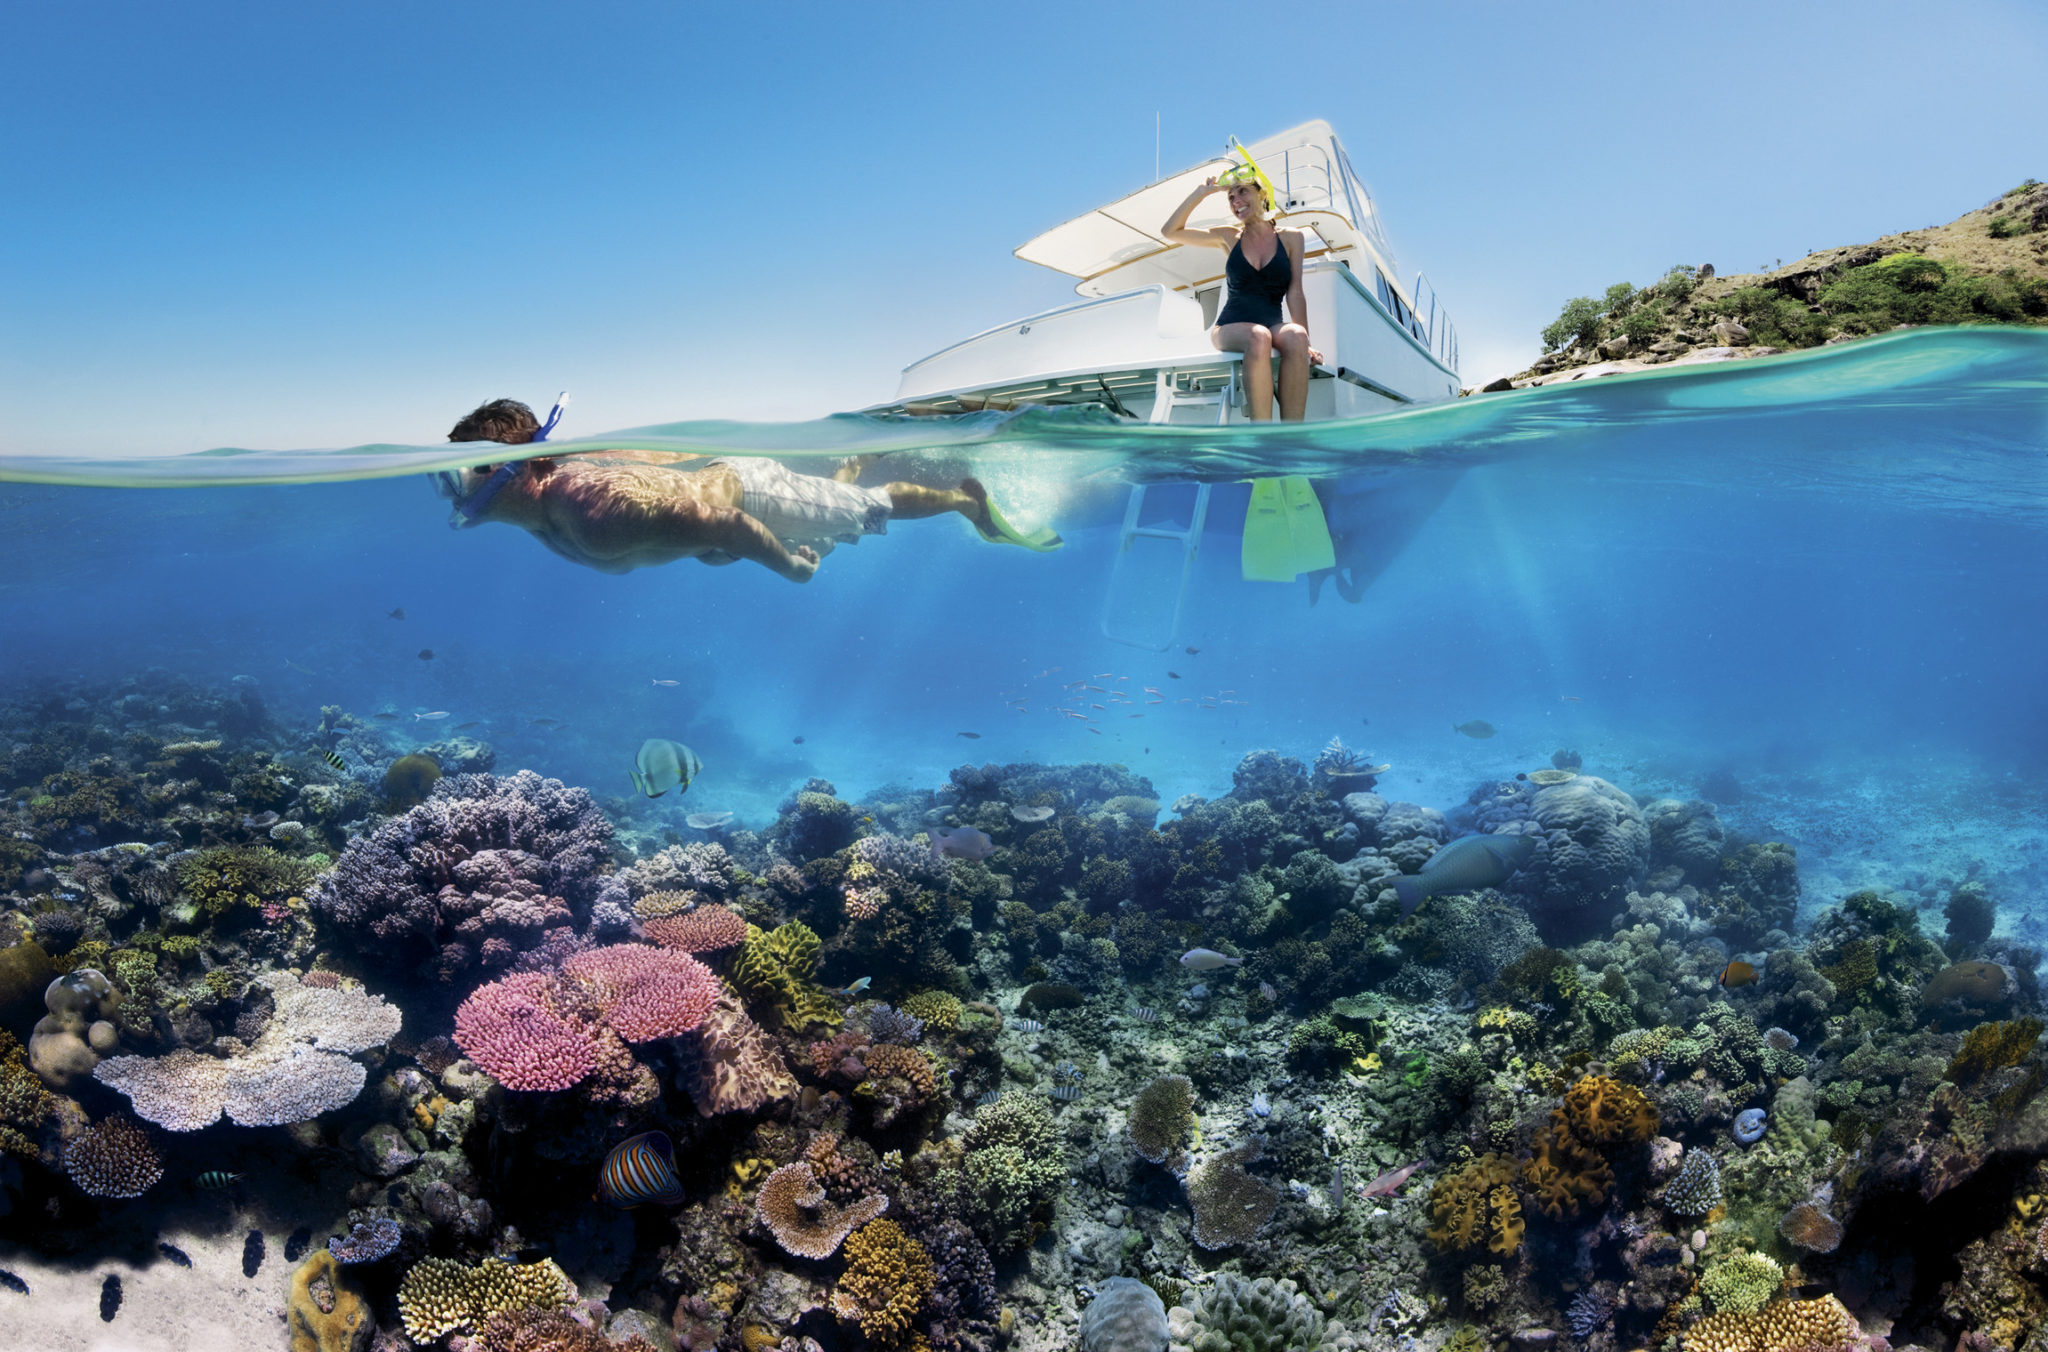 Top Reasons To Go For A Reef Tour This Year